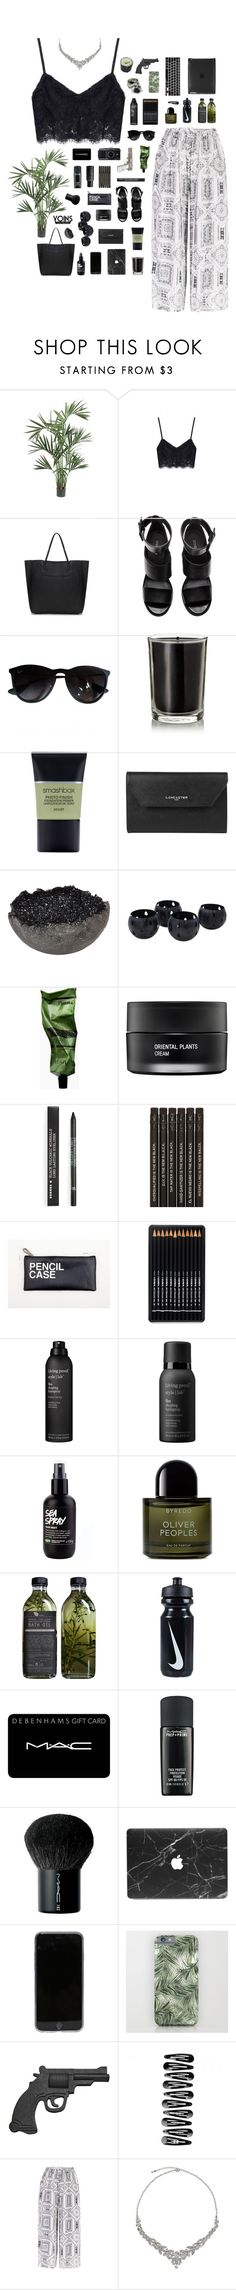 """Yoins // Second Life"" by blood-drops ❤ liked on Polyvore featuring Nearly Natural, H&M, Ray-Ban, Coqui Coqui, Smashbox, Lancaster, Leica, Jess Panza, NOVICA and Aesop"